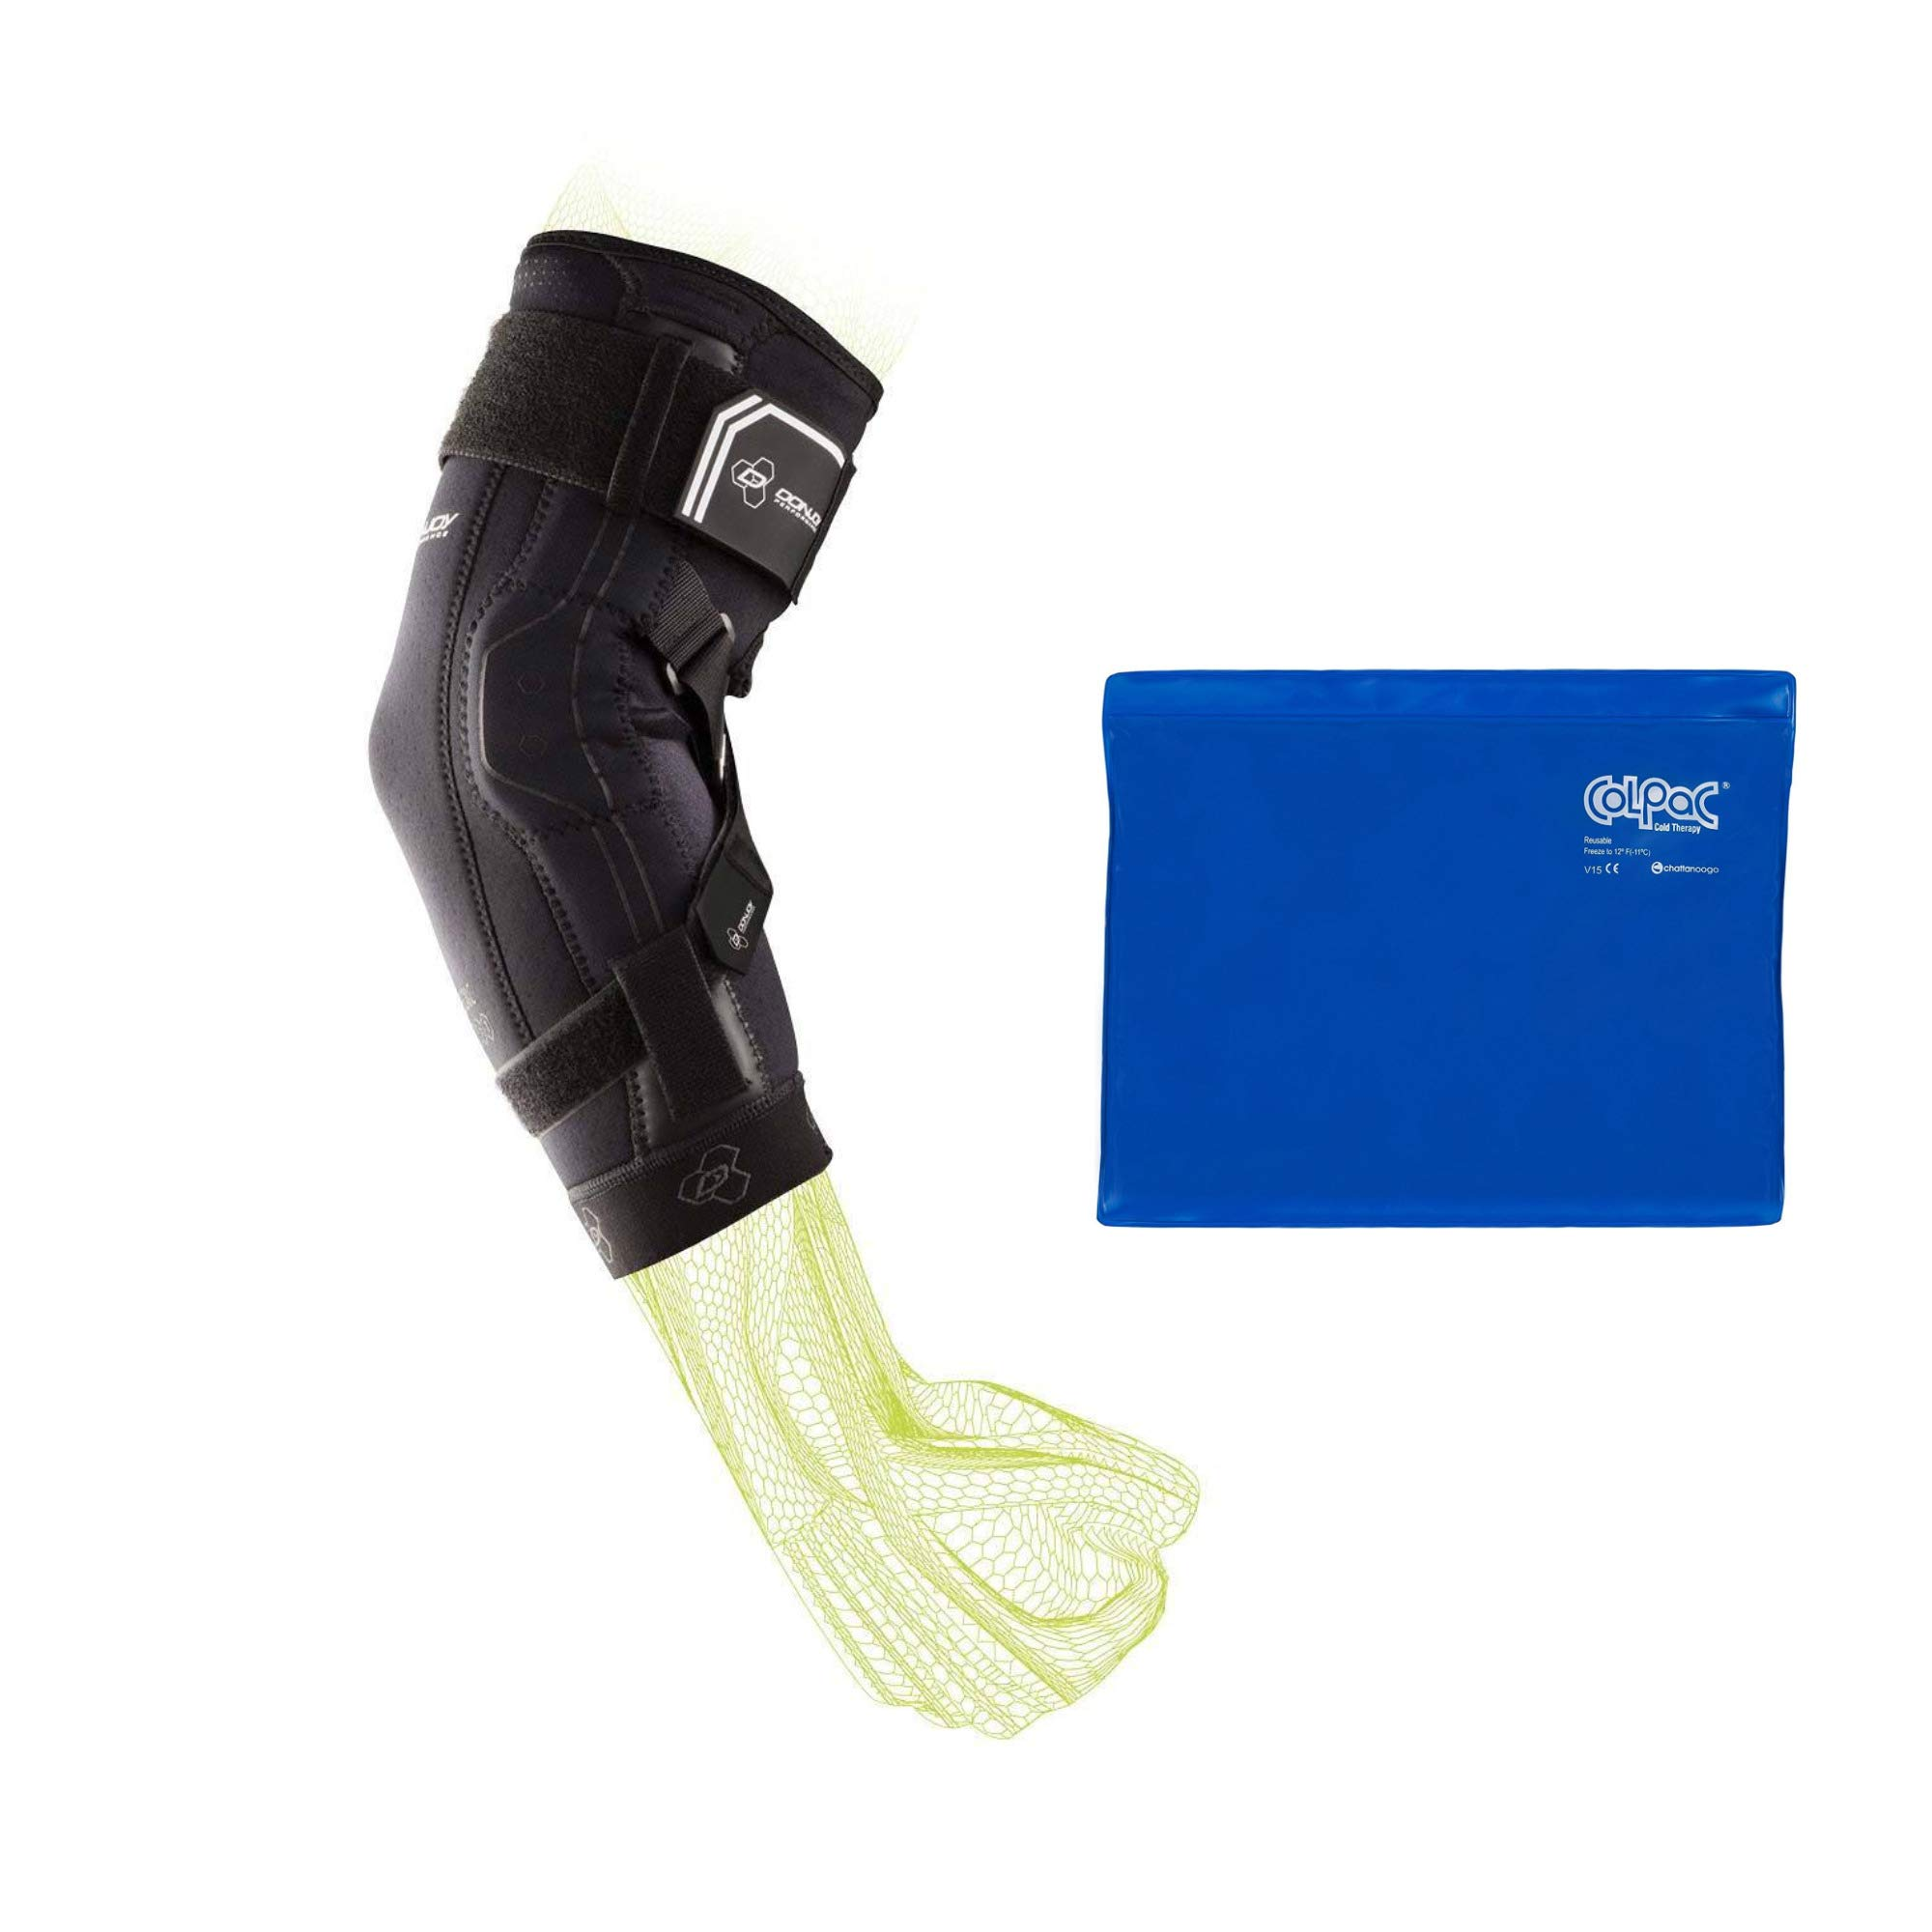 DonJoy Performance Bionic II Elbow Support Brace (X-Large) and Chattanooga ColPac Reusable Gel Ice Pack Cold Therapy - Blue Vinyl - Standard - (11 in x 14 in) - Value Bundle